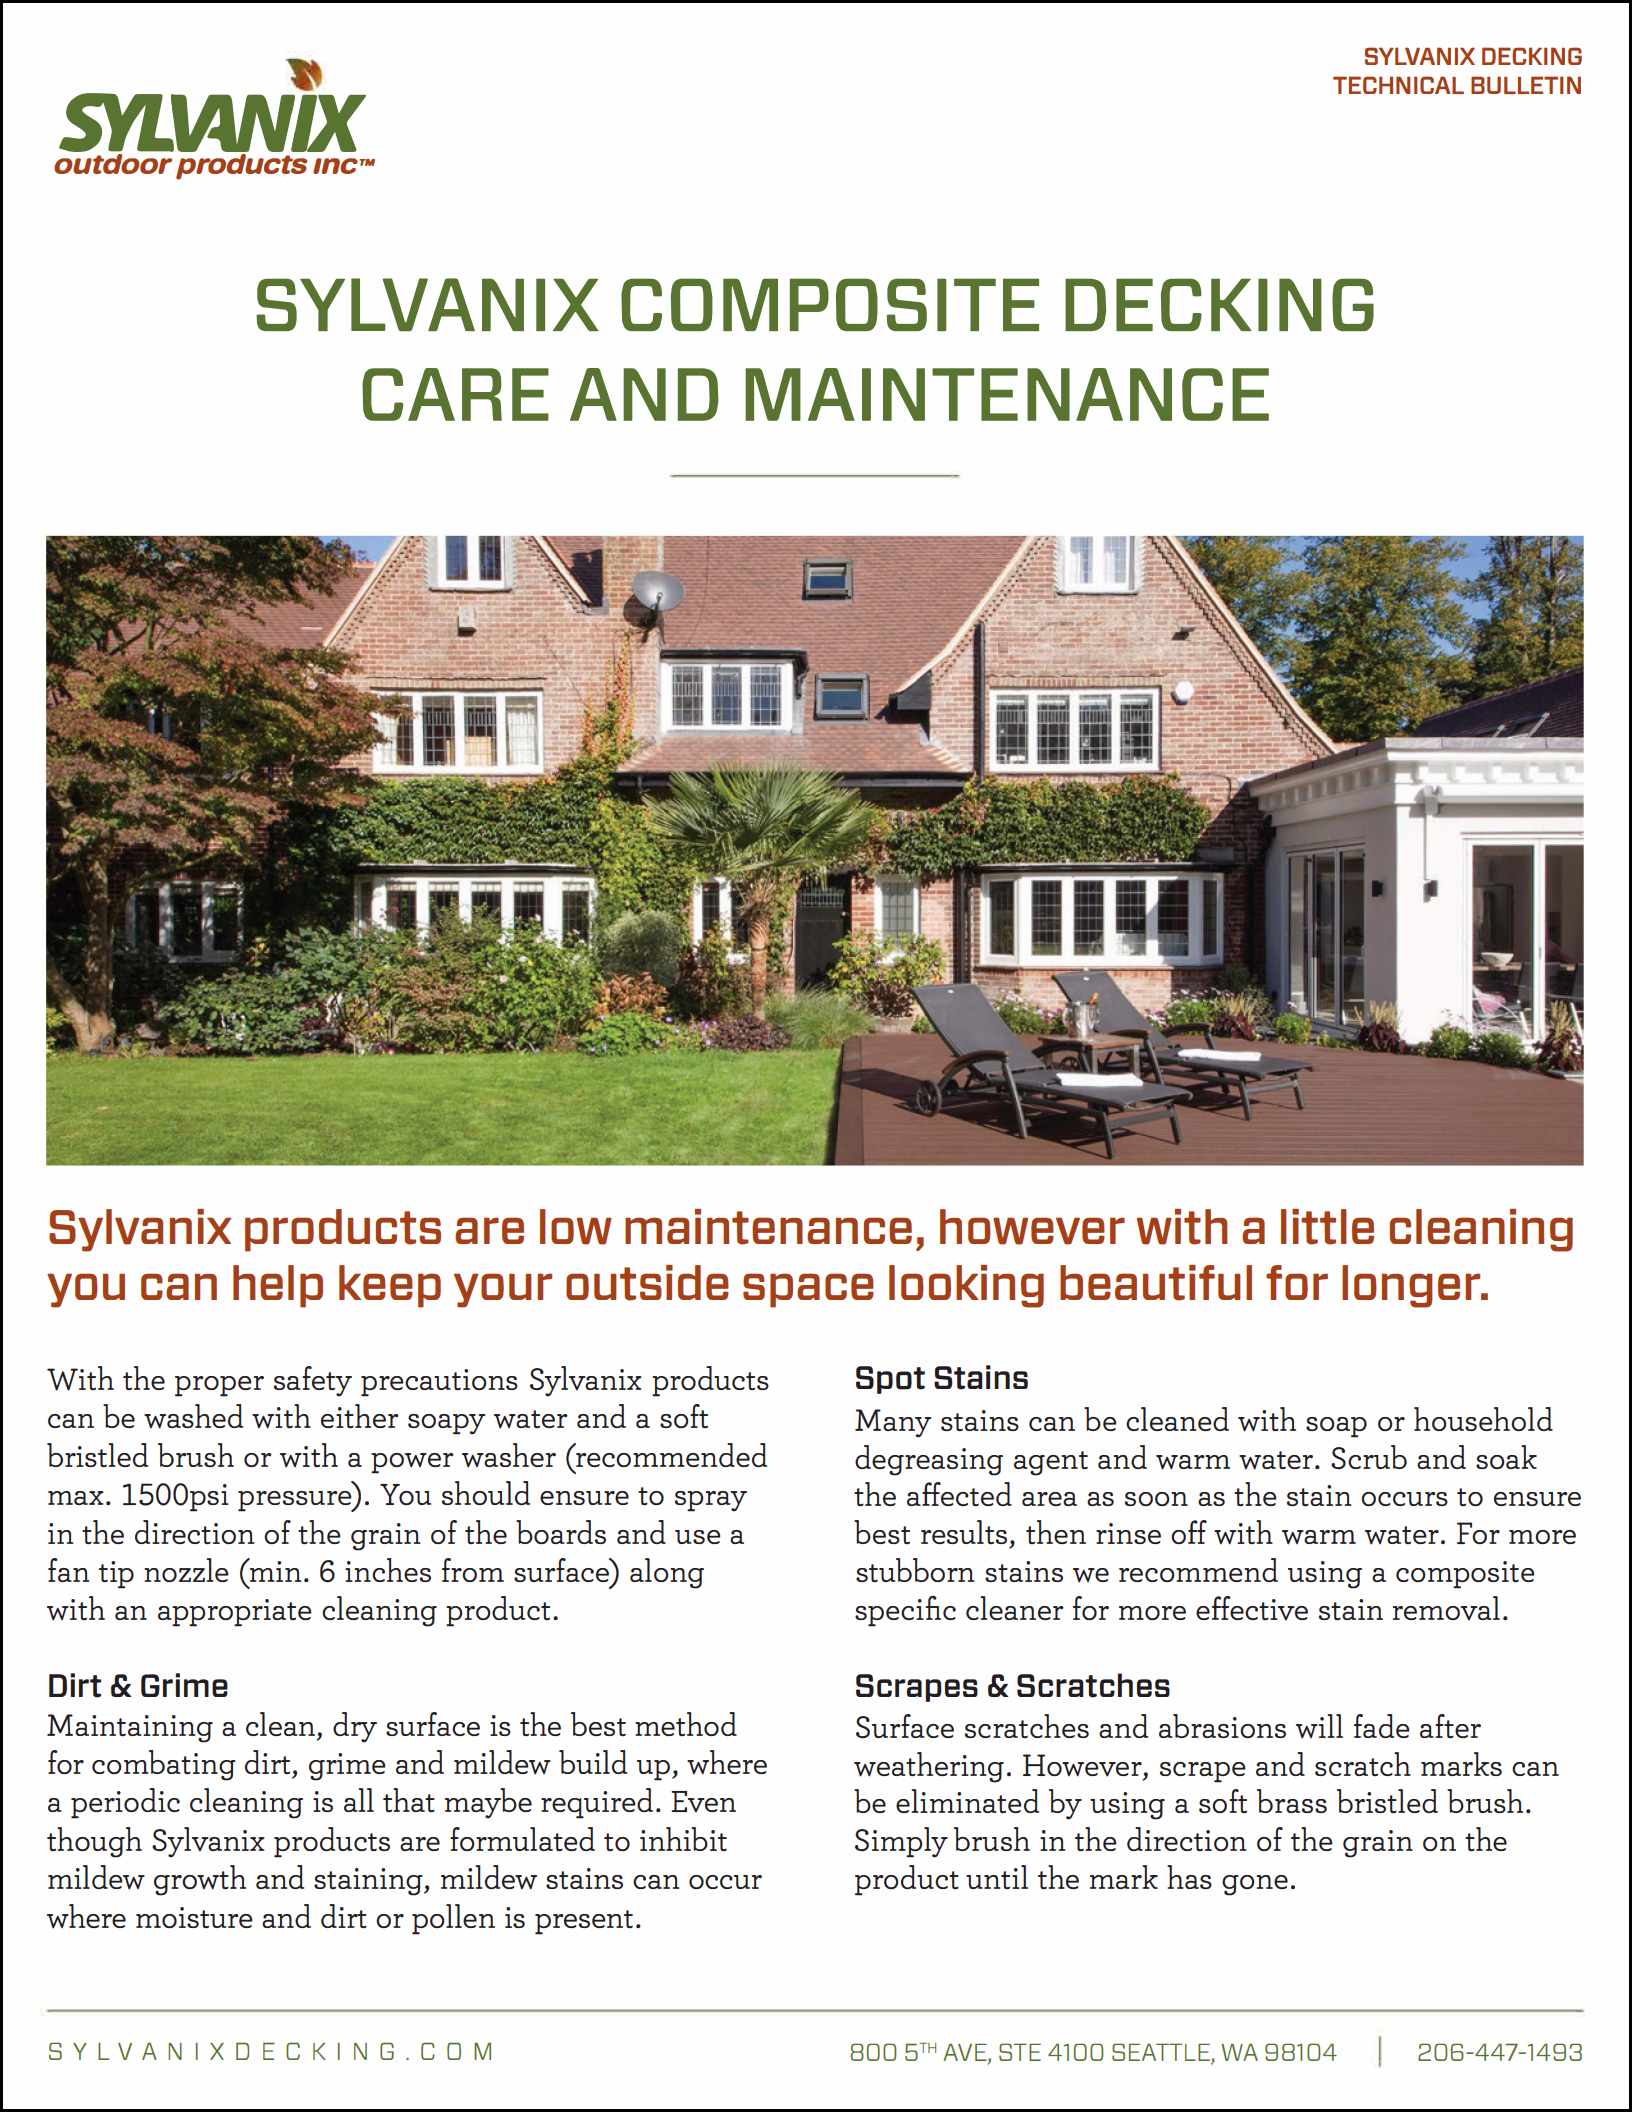 Sylvanix_Composite_Decking_Care_Maintenance_Link.png